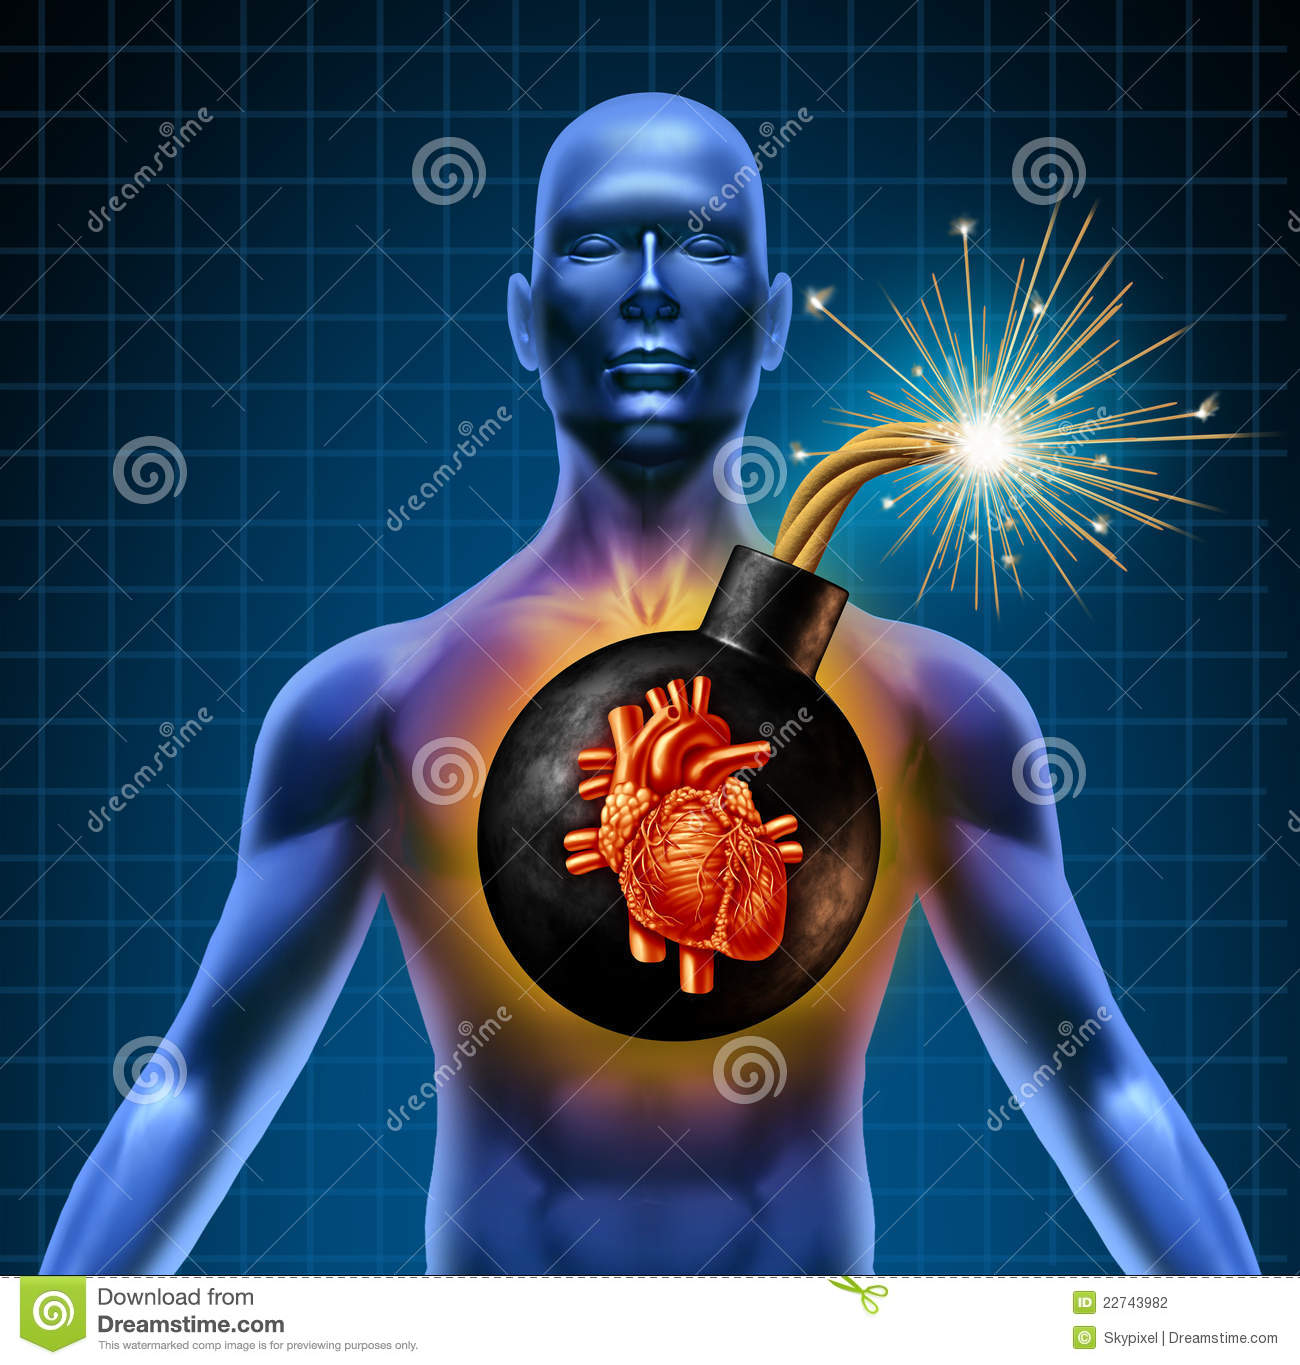 Human heart attack time bomb stock illustration illustration of human heart attack time bomb ccuart Choice Image